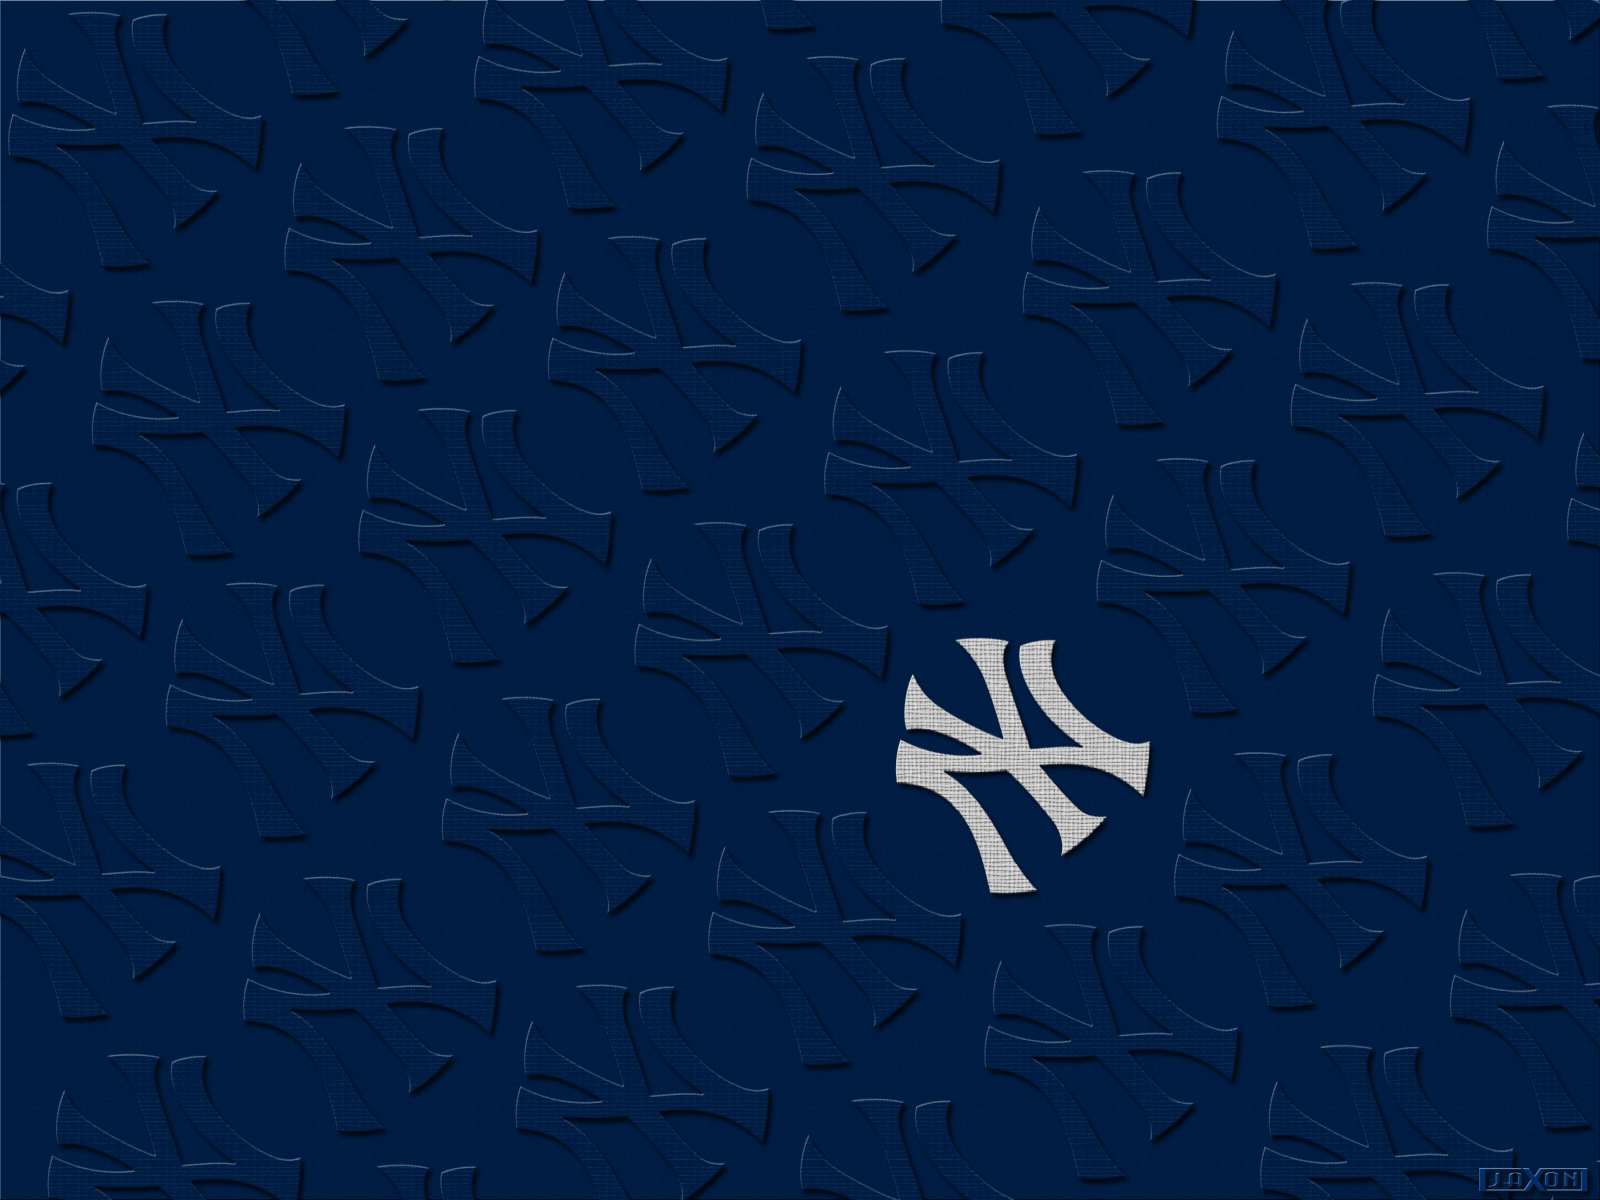 46 New York Yankees Wallpaper For Computer On Wallpapersafari